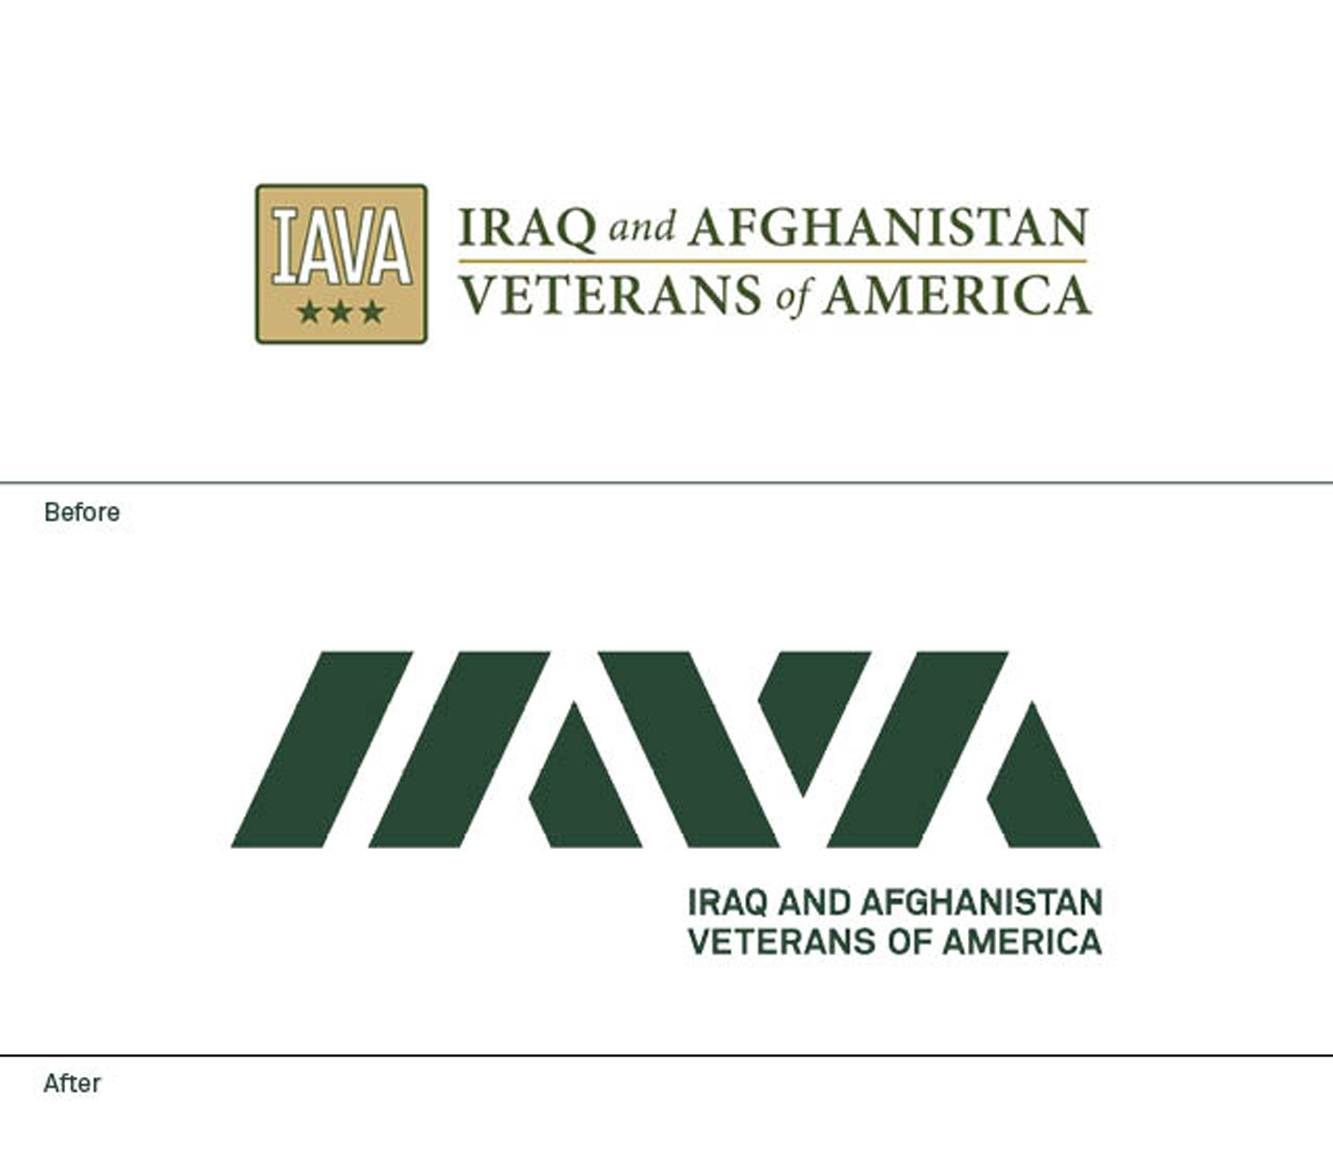 IAVA Visual Identity- A New Way to Celebrate Our Troops: Landor, New York, New York, 2013